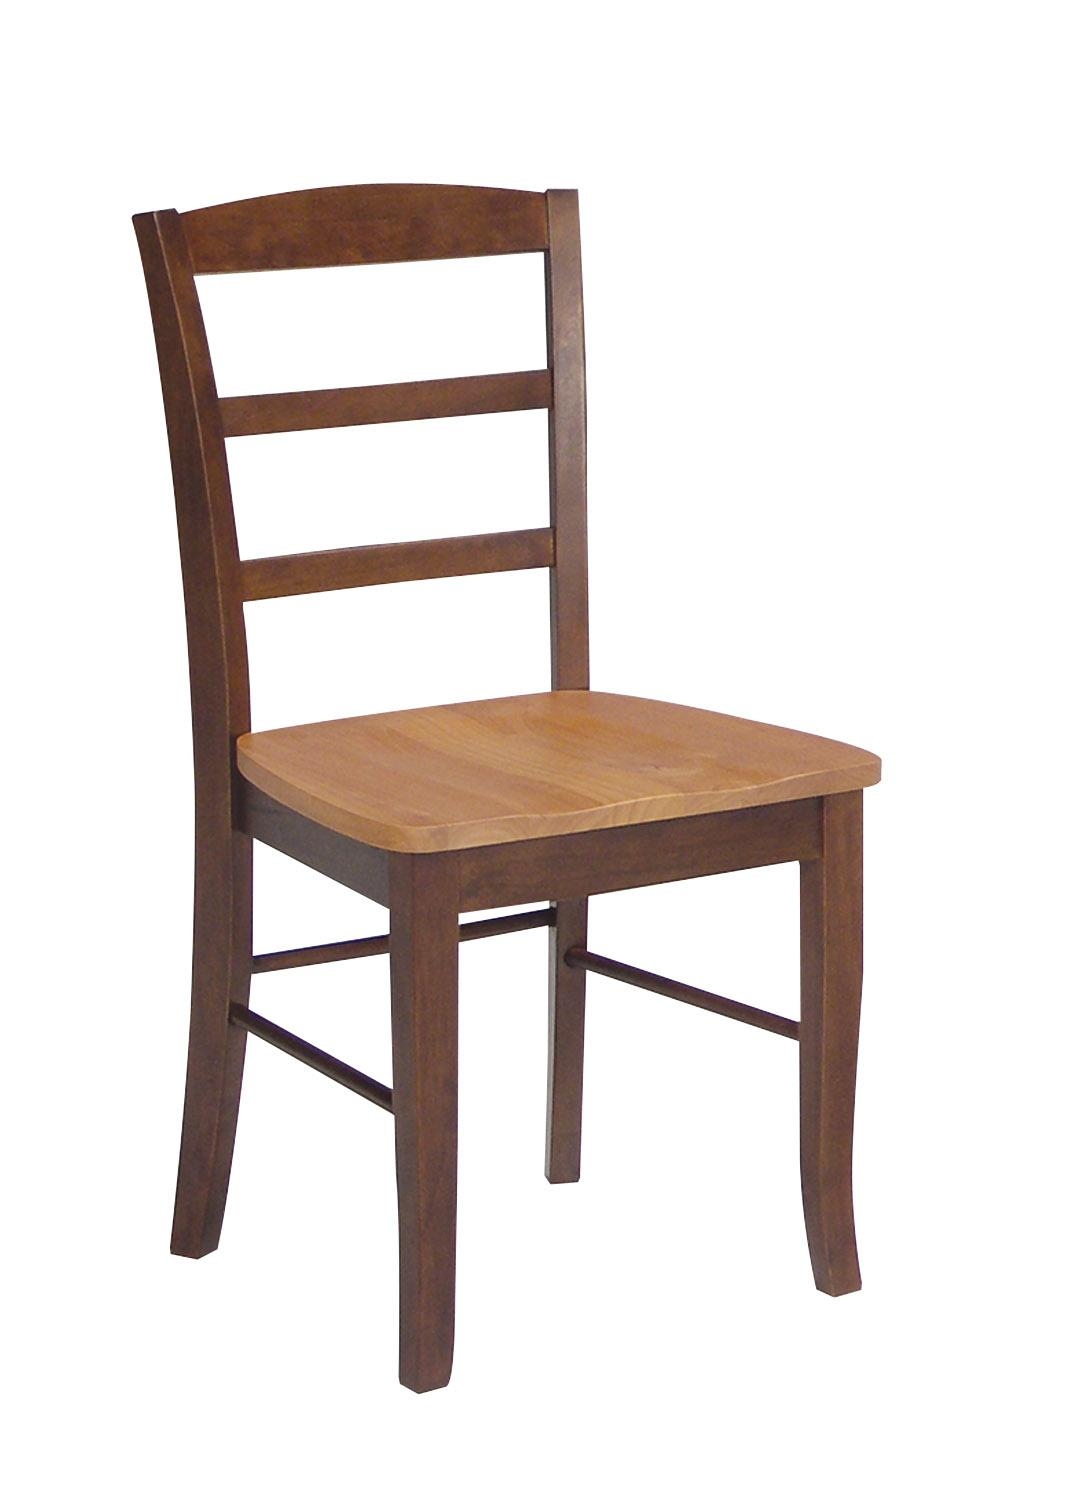 John Thomas Dining Essentials Ladderback Side Chair - Item Number: C58-2